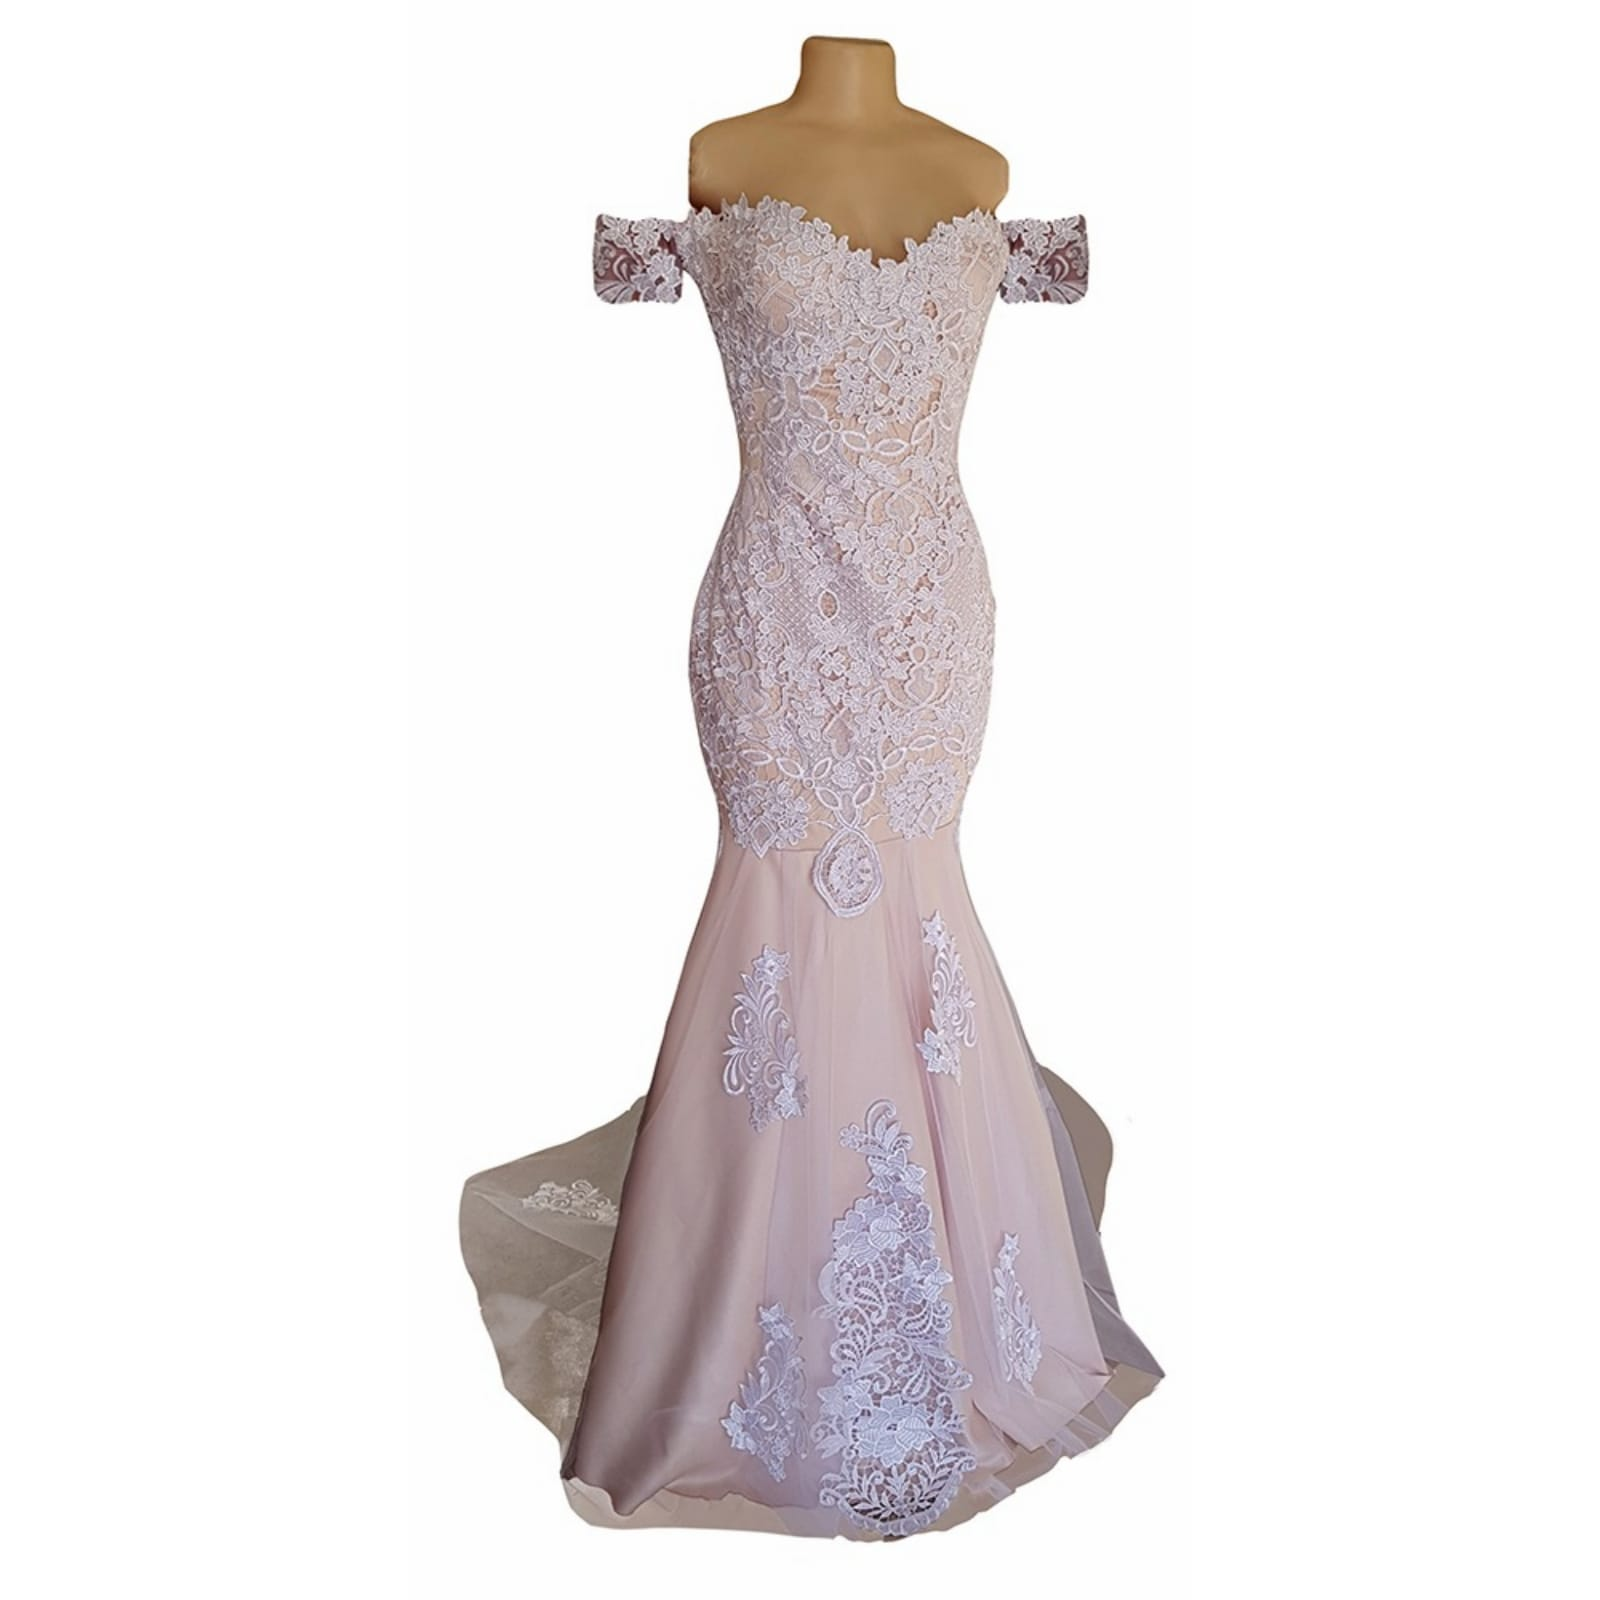 White lace and pinky peach mermaid wedding dress 4 pale peach and white soft mermaid wedding dress with a lace-up open back and off-shoulder strap sleeve. With a sheer train detailed with lace.